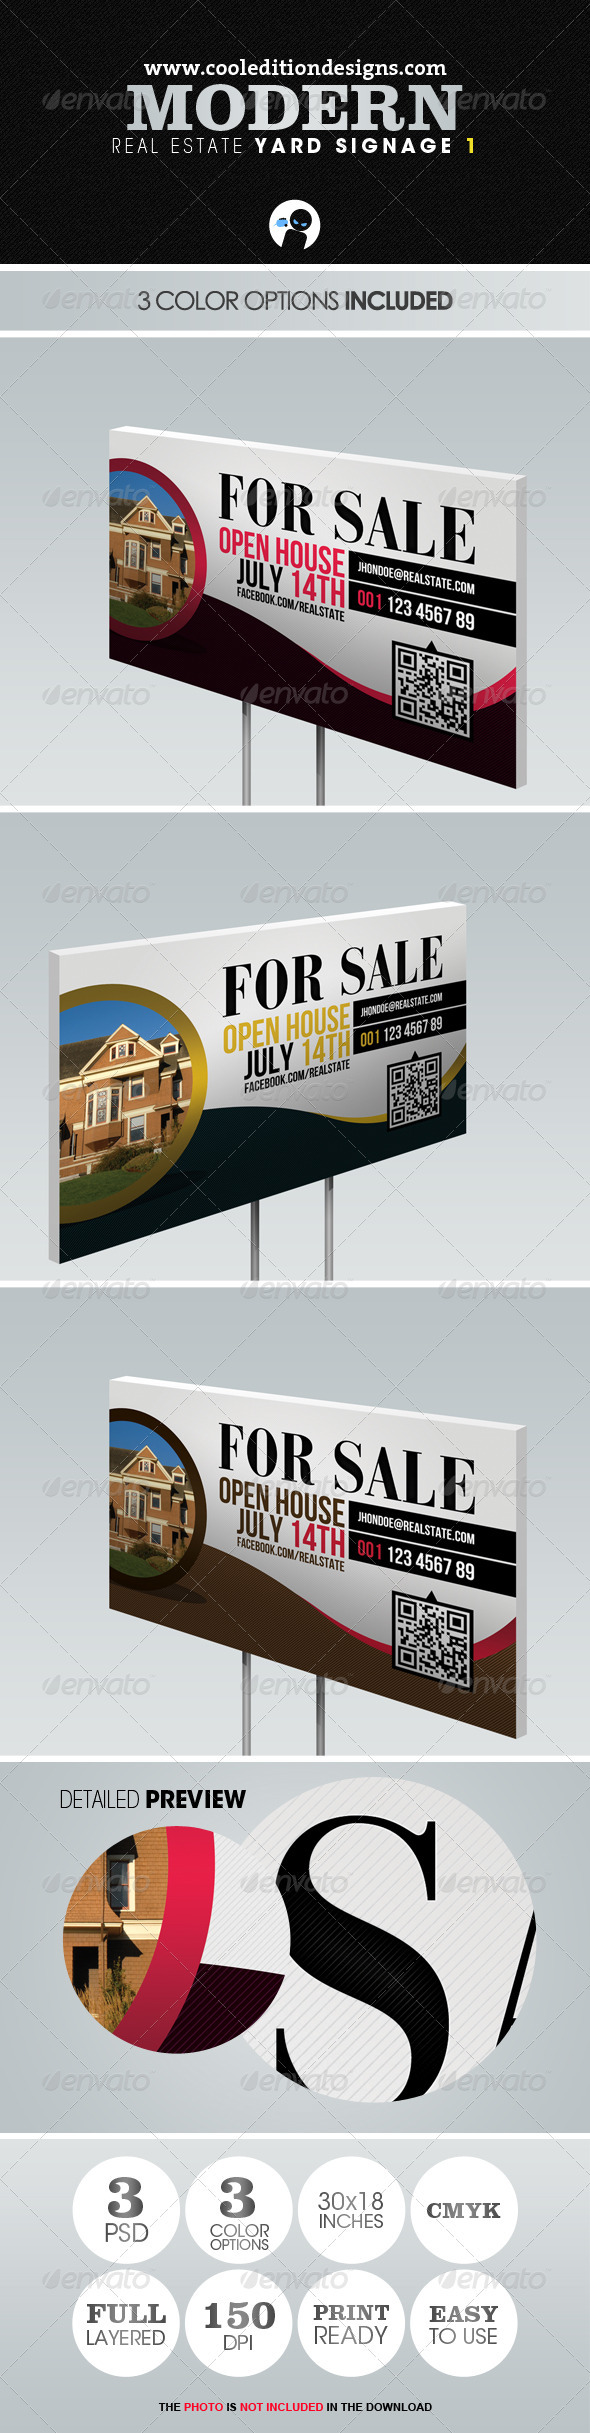 GraphicRiver Modern Real Estate Yard Signage 1 2410929